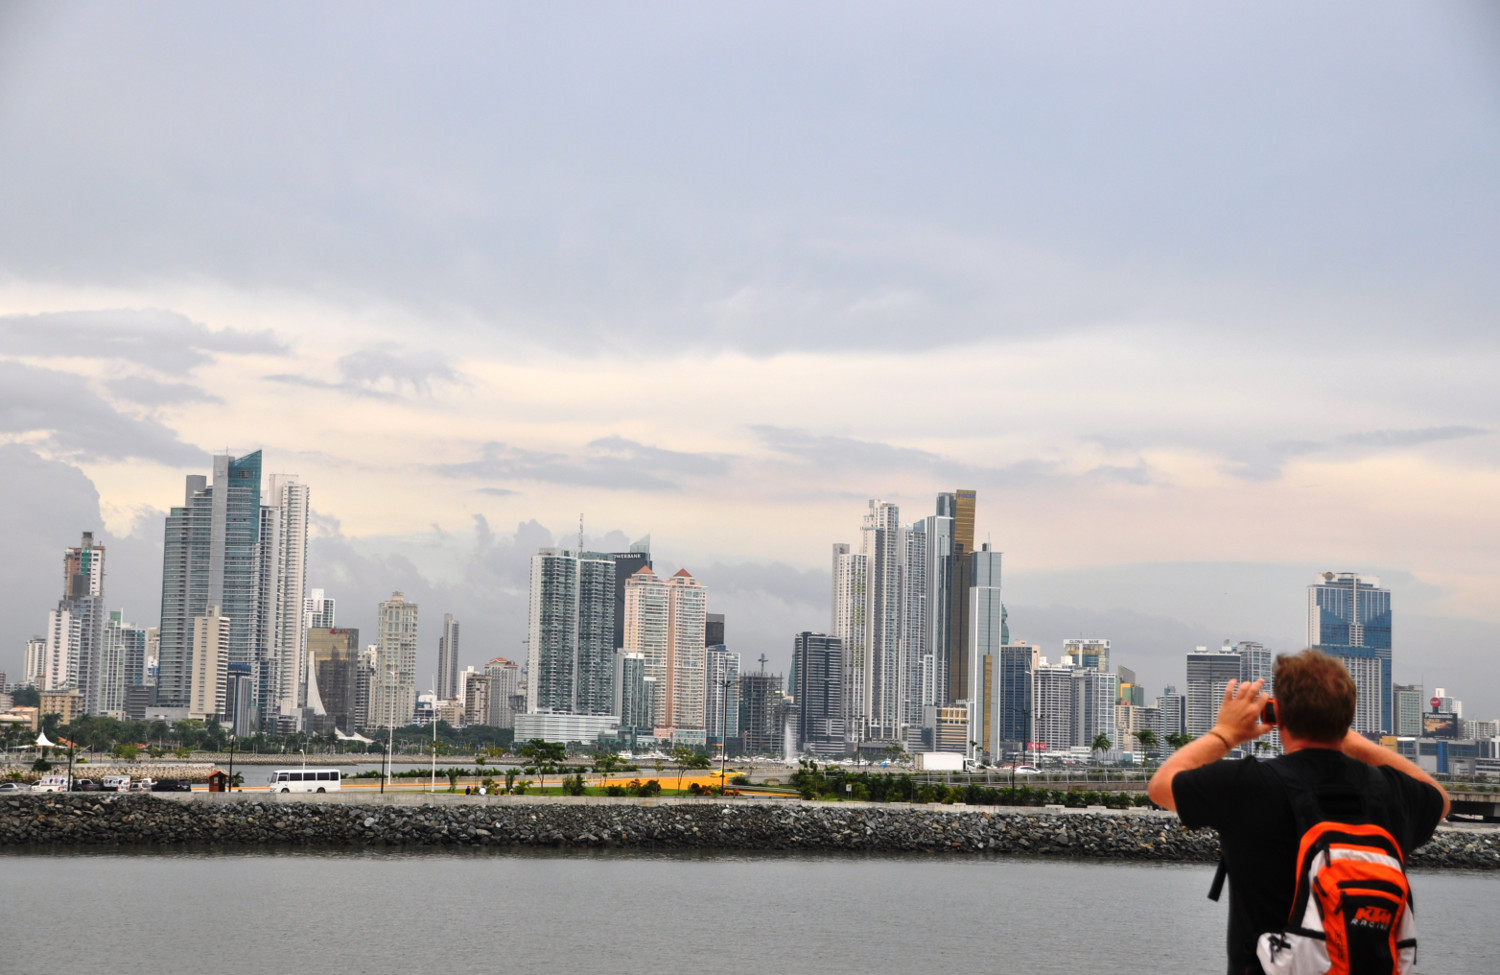 Moderne Metropole Panama City | The modern metropolis of Panama City